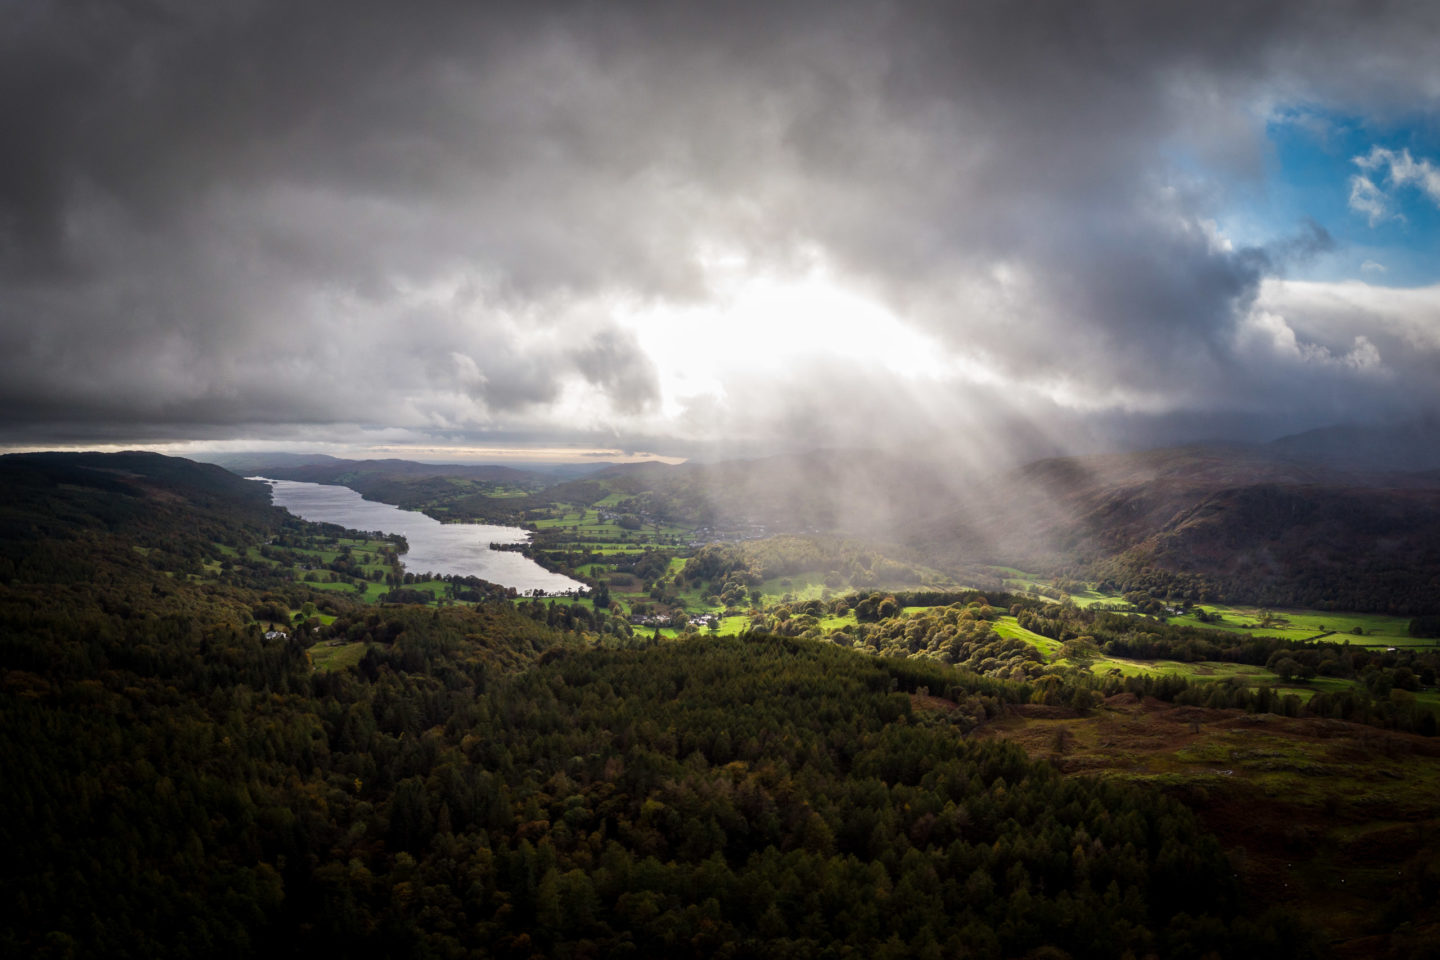 Squall over Coniston